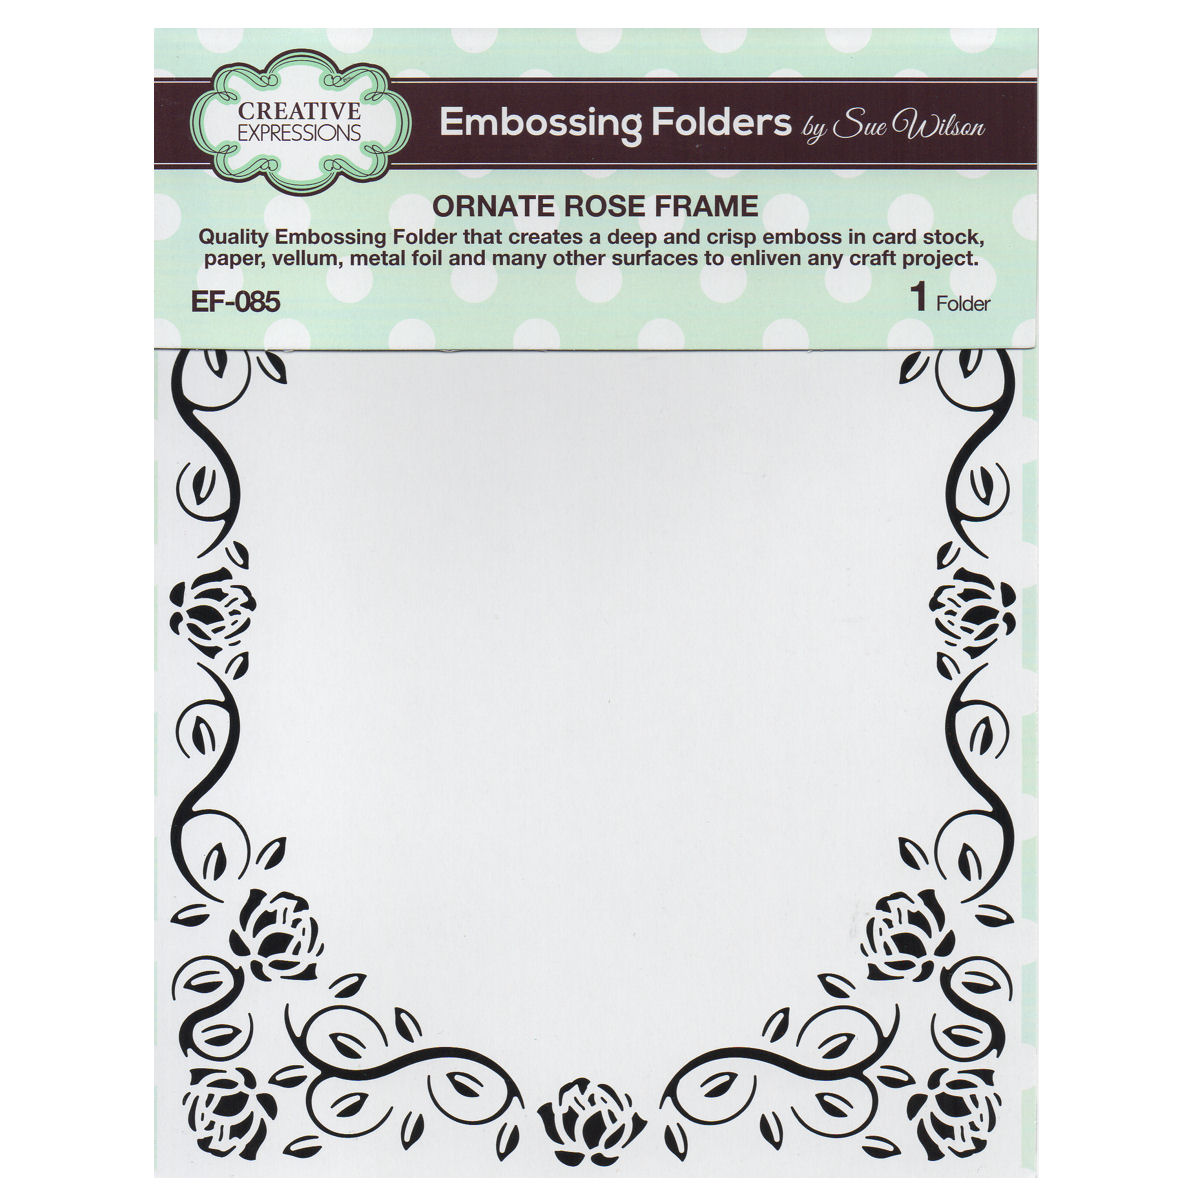 Embossing Folder by Sue Wilson Eve/'s Snowflakes EF-096 Creative Expressions